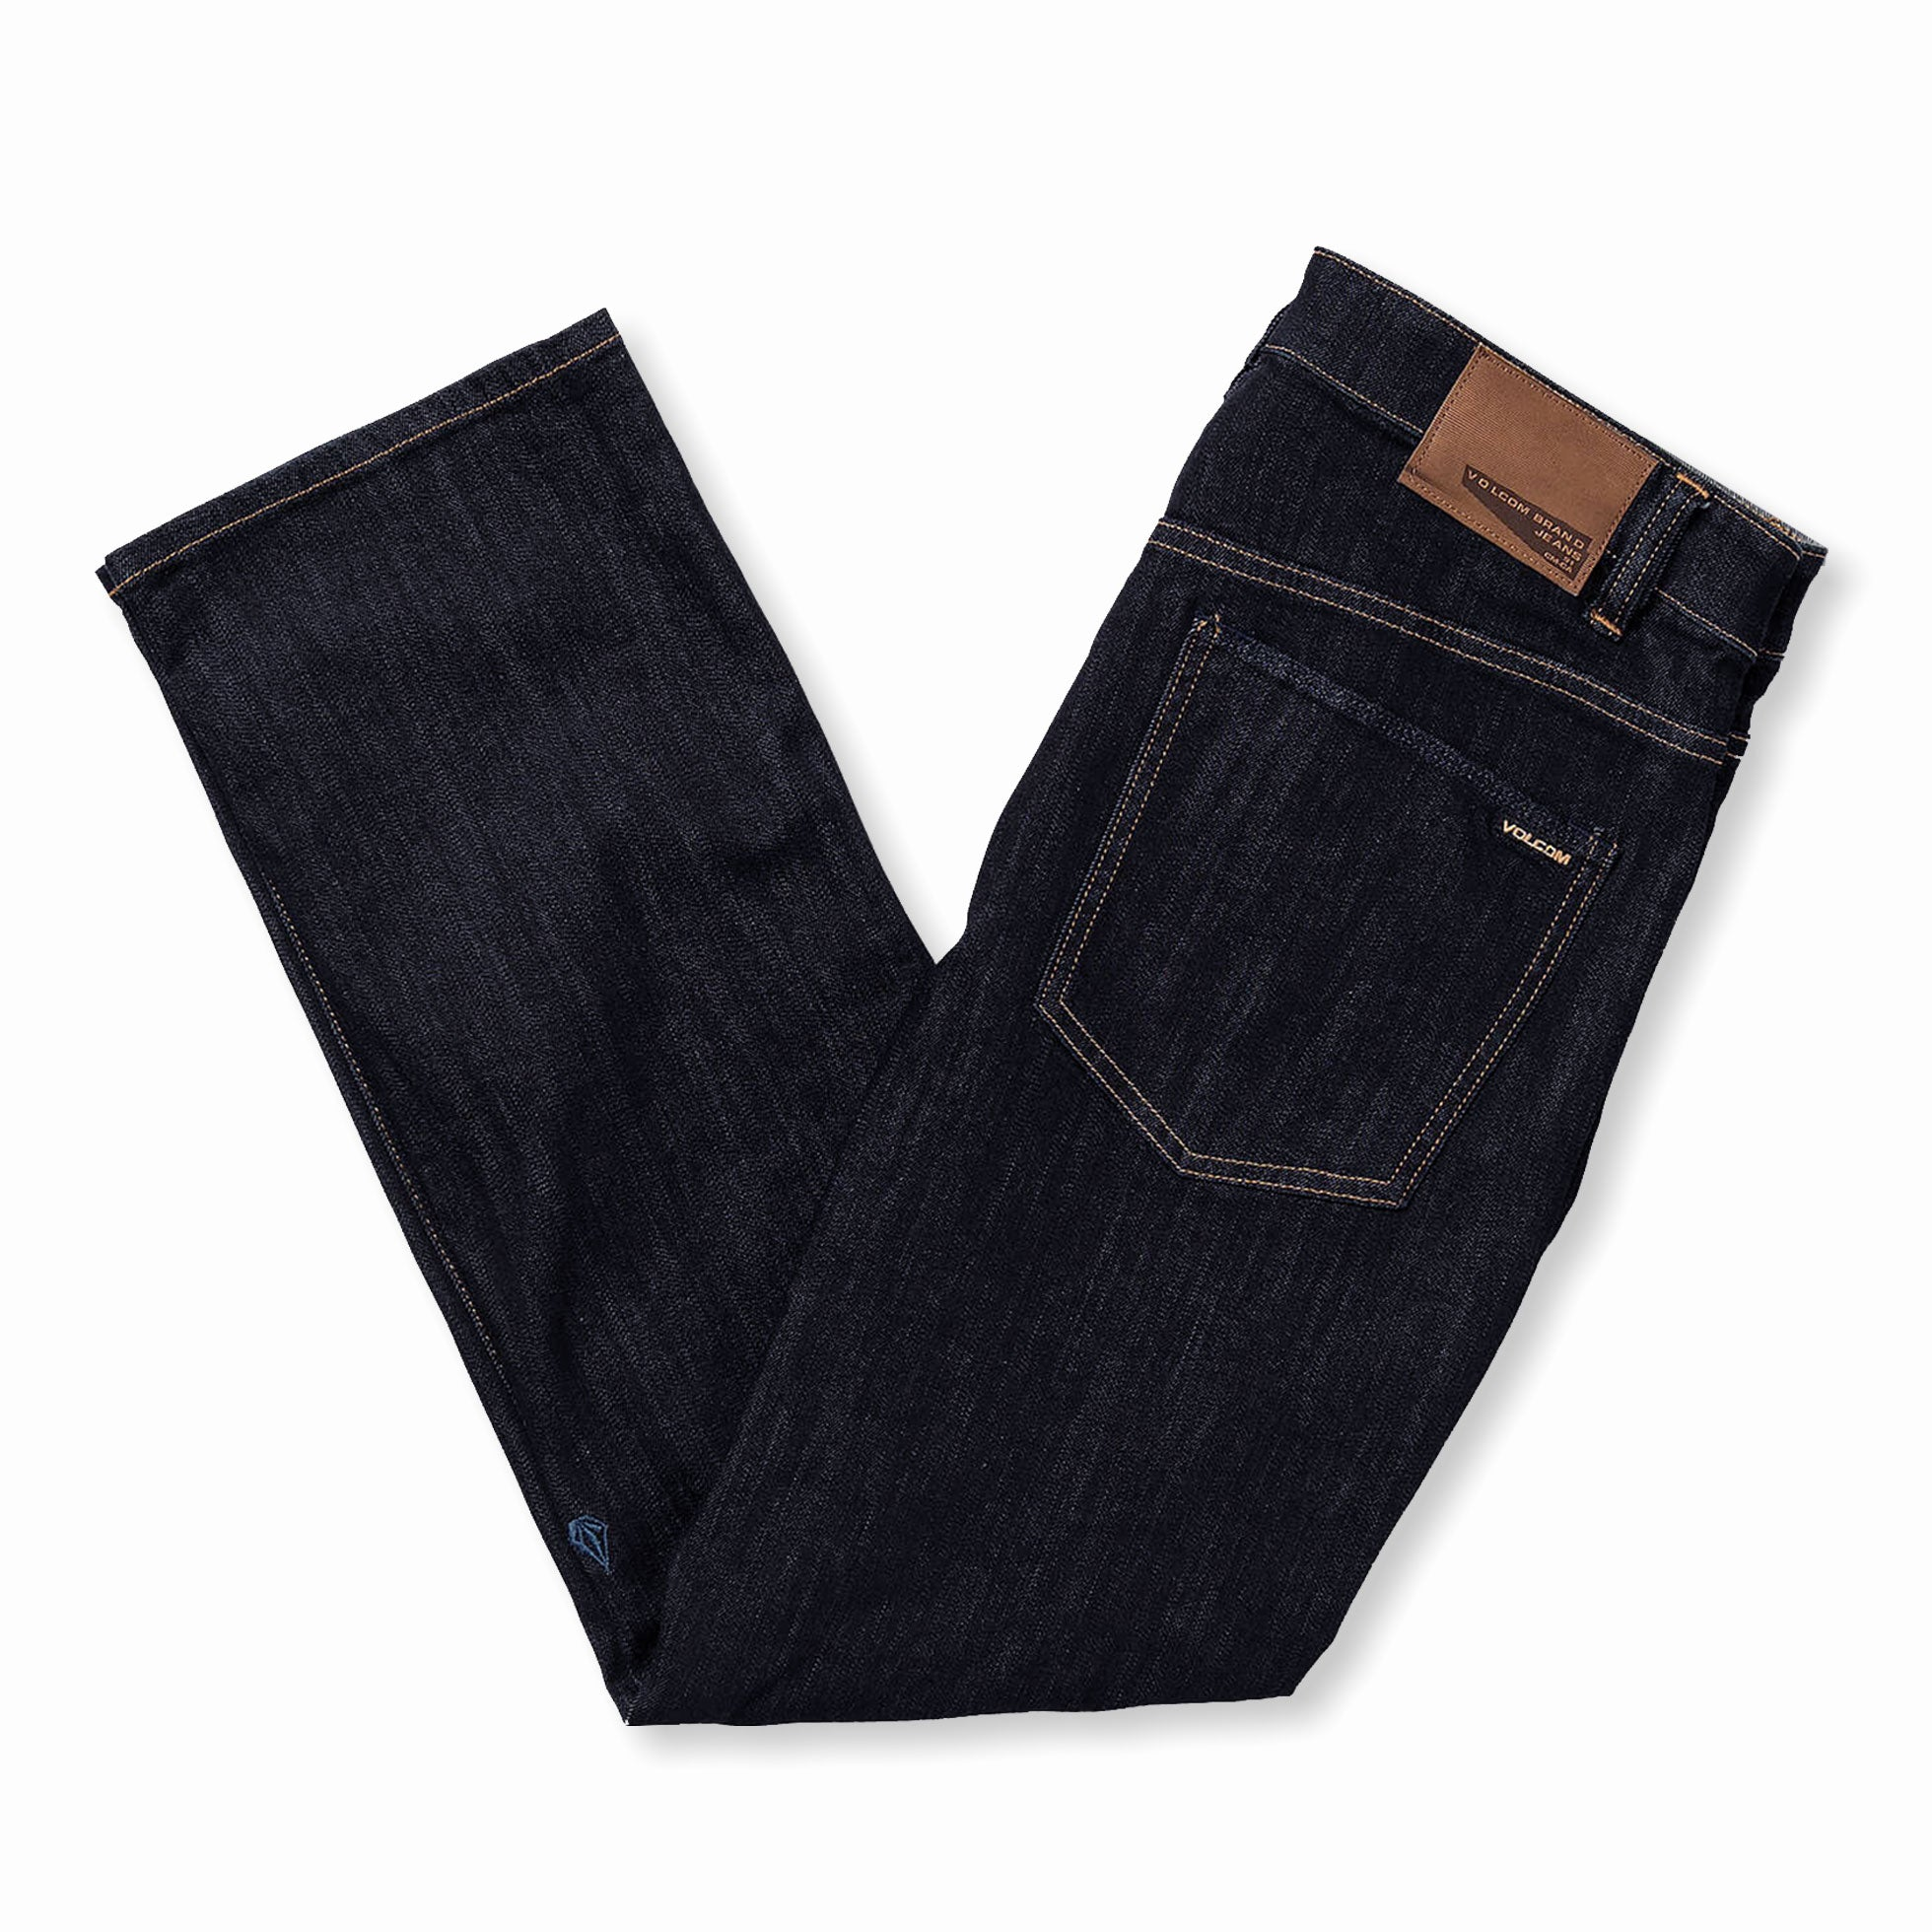 Volcom Solver Denim Jeans Product Photo #2